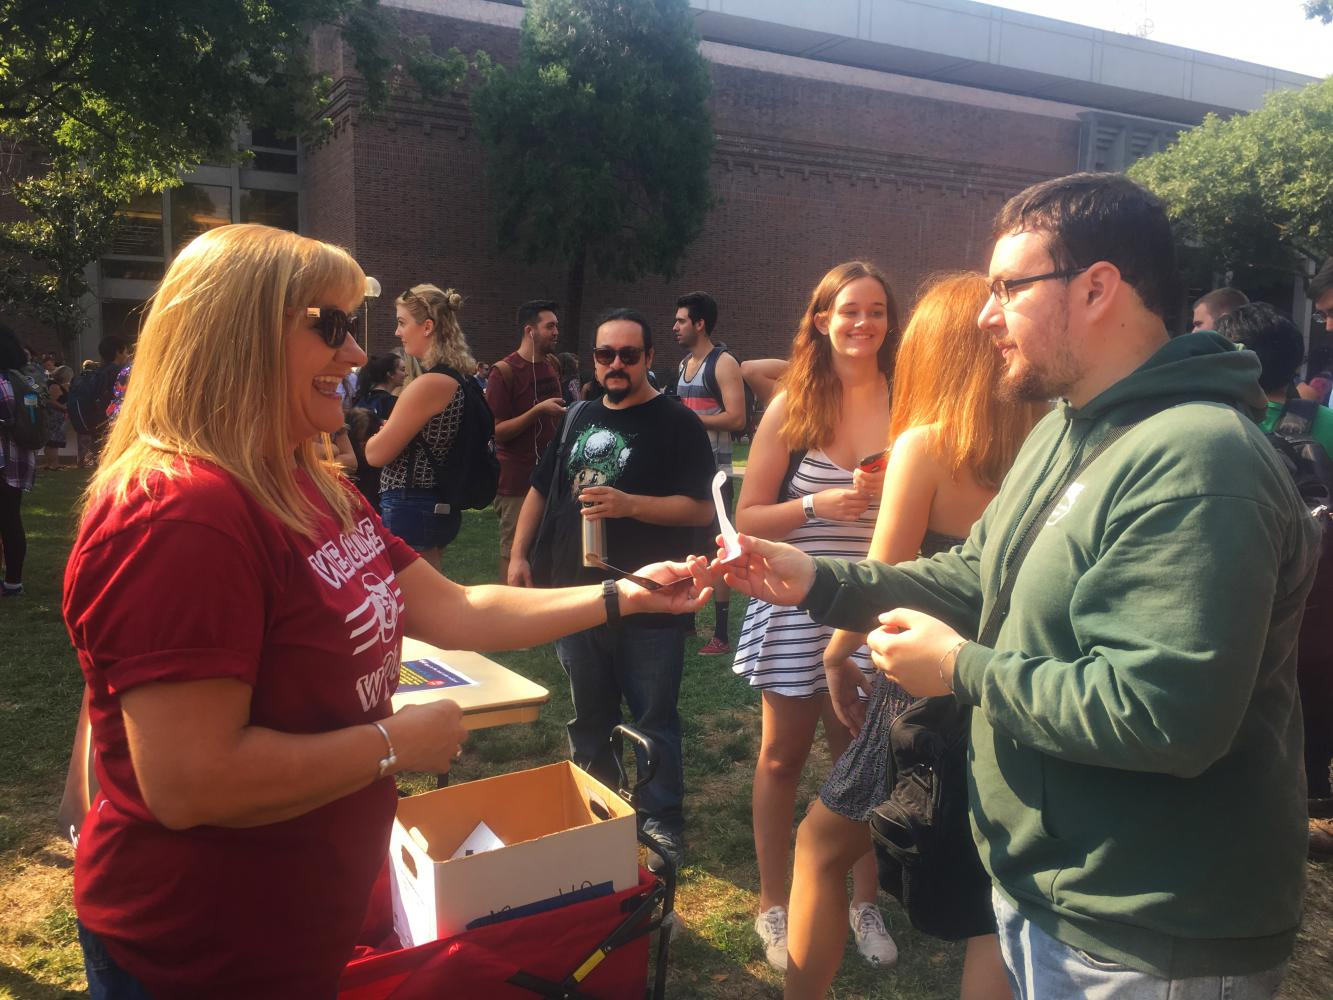 Margie Mitchell hands a student viewing glasses at the Glenn Lawn eclipse viewing party. Photo Credit: Natalie Hanson